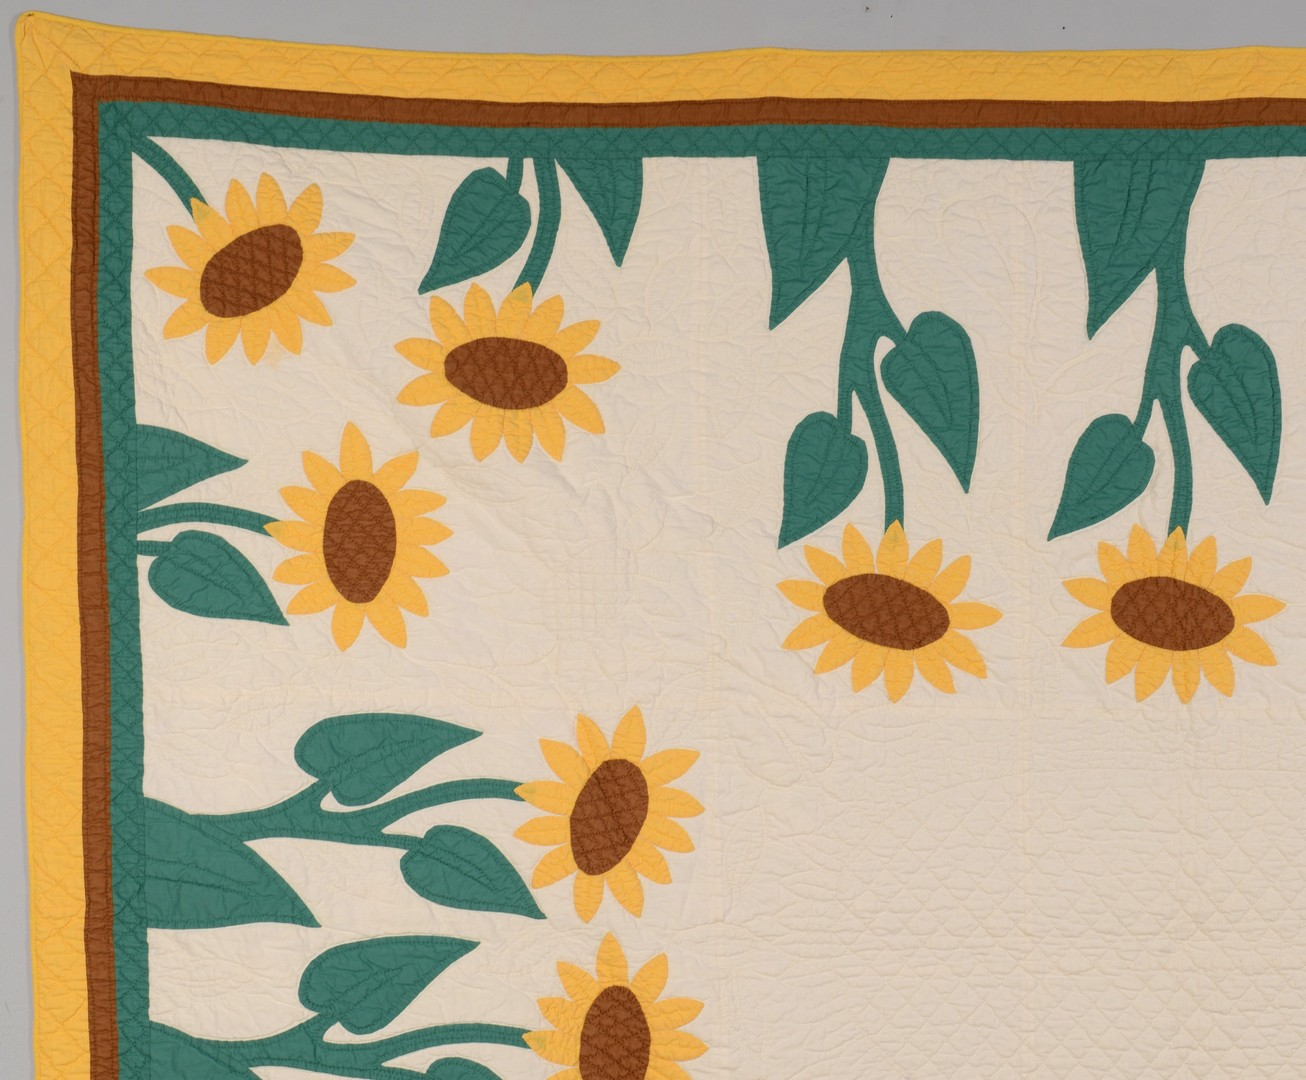 Lot 490: Cotton Applique Sunflower Quilt